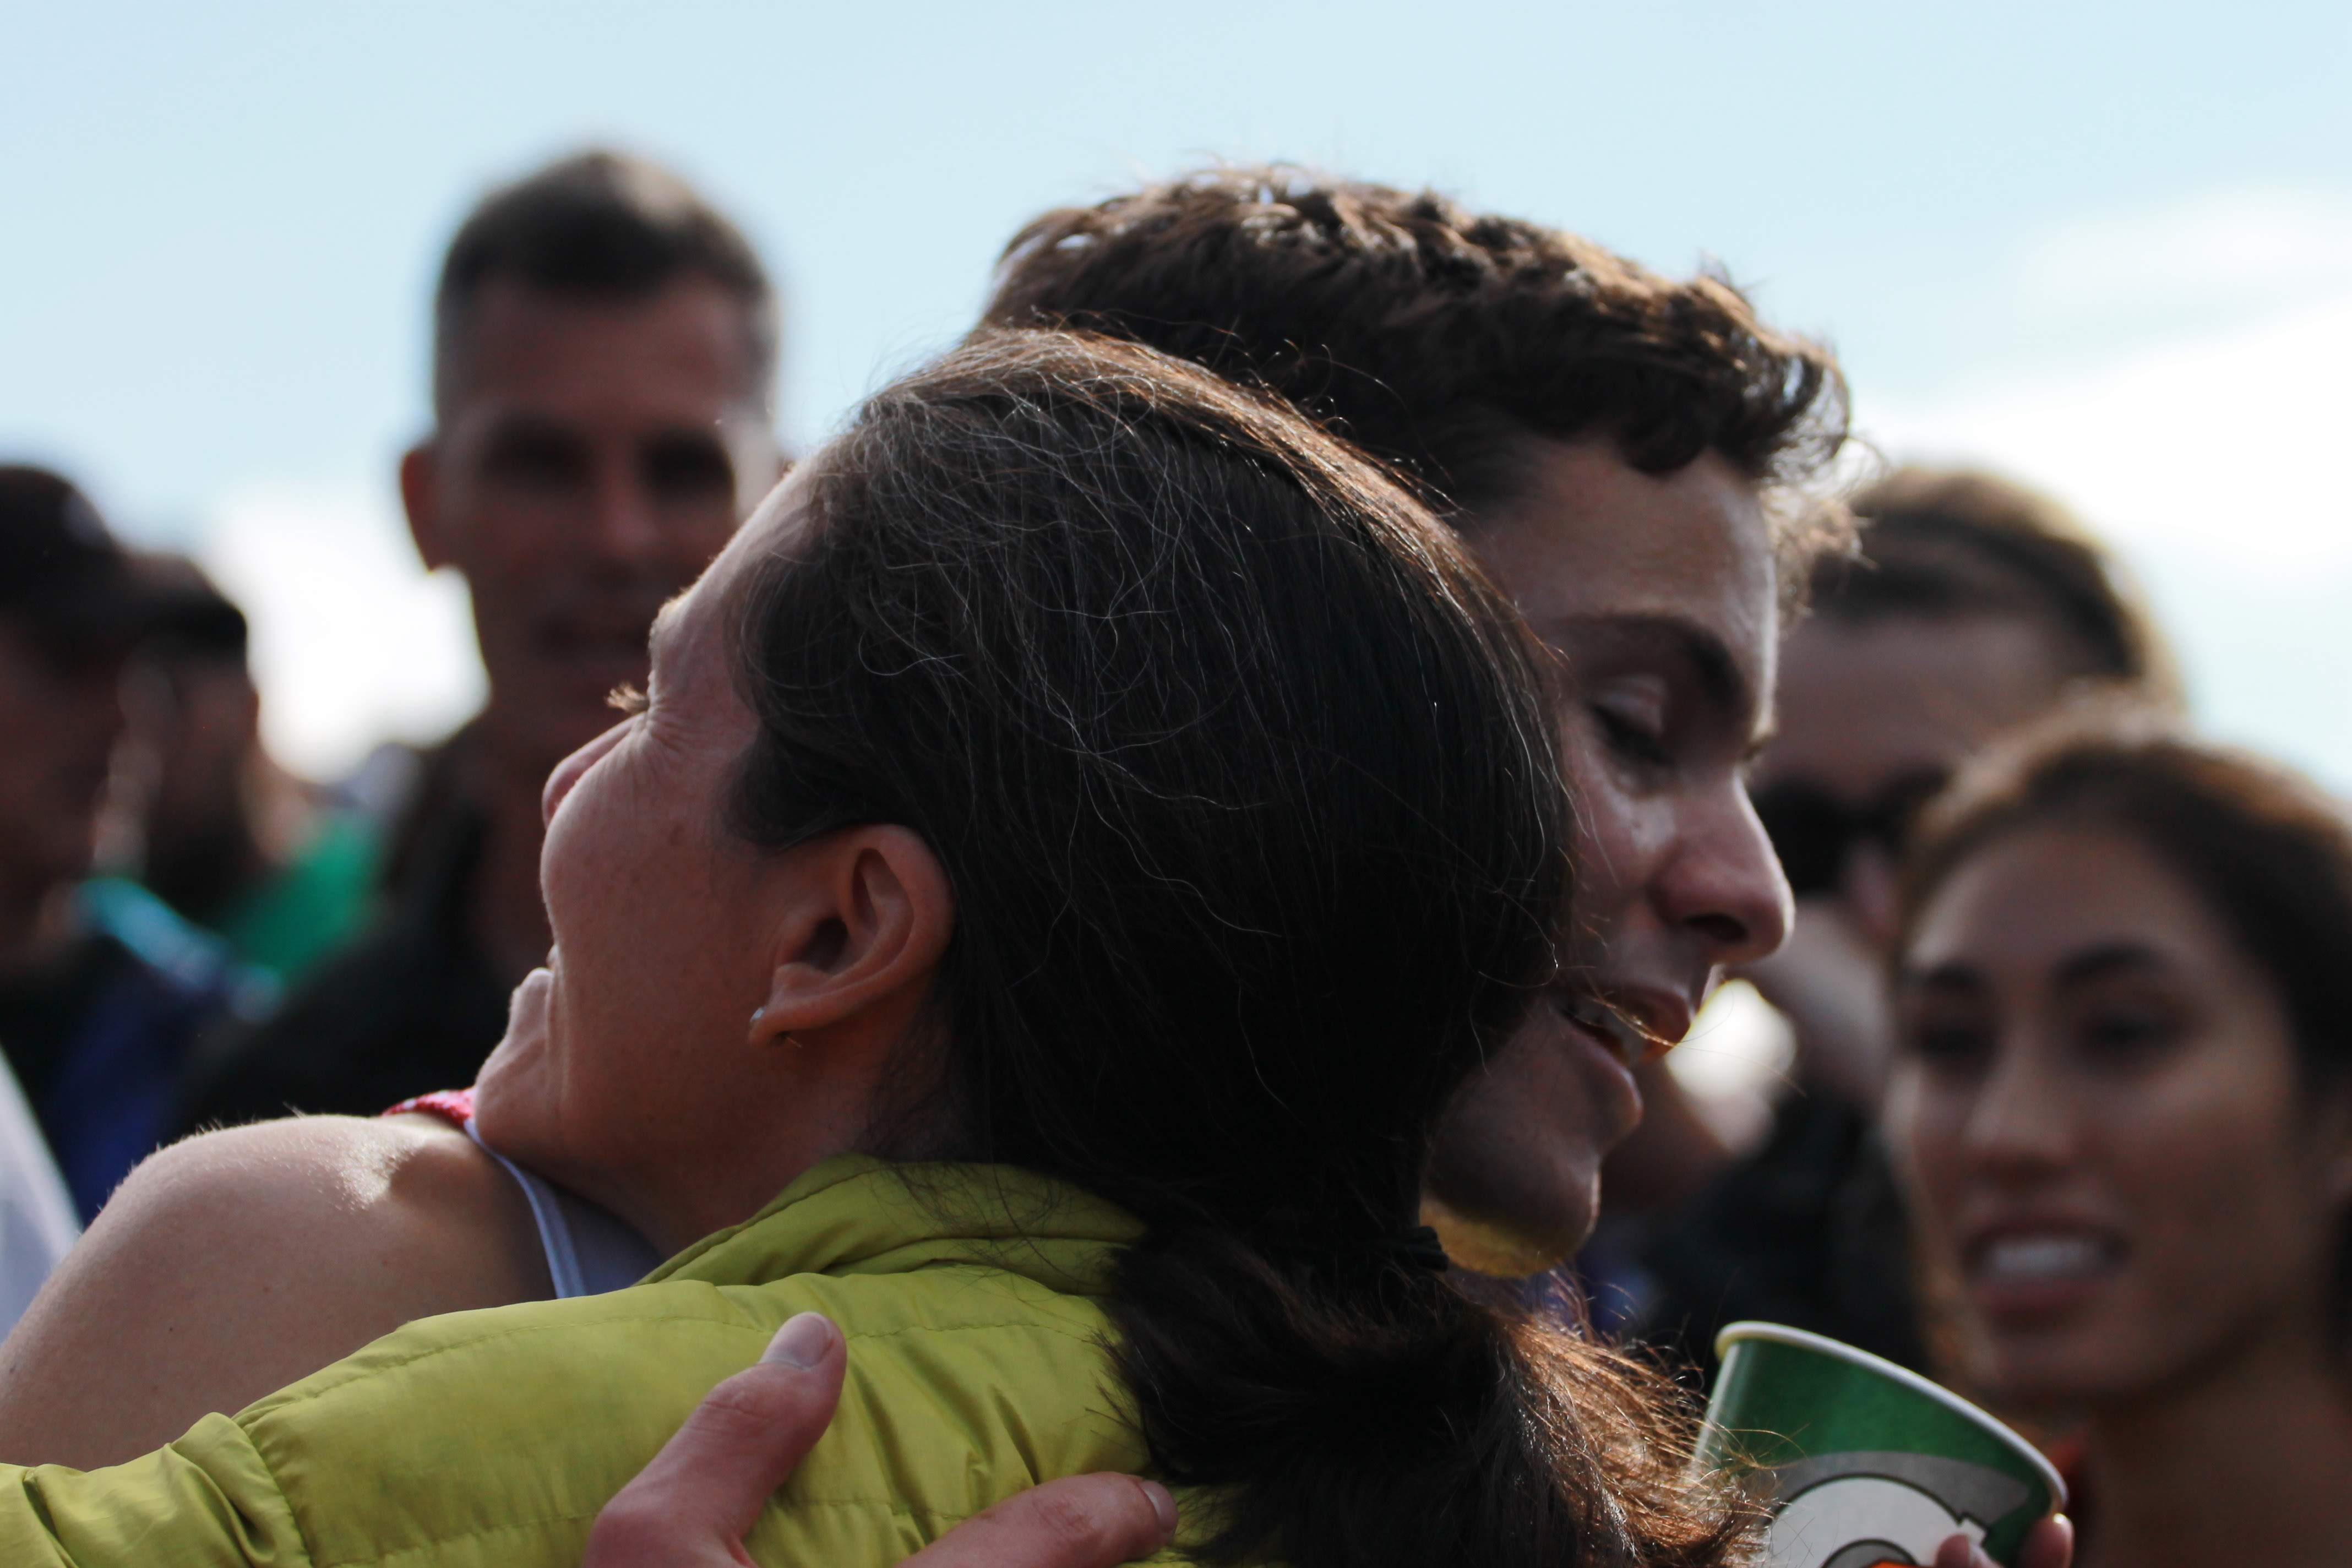 Henry Pick receives a hug from his mom after stepping out of the chute. Credit: Jocelyn Brossia / The Foothill Dragon Press